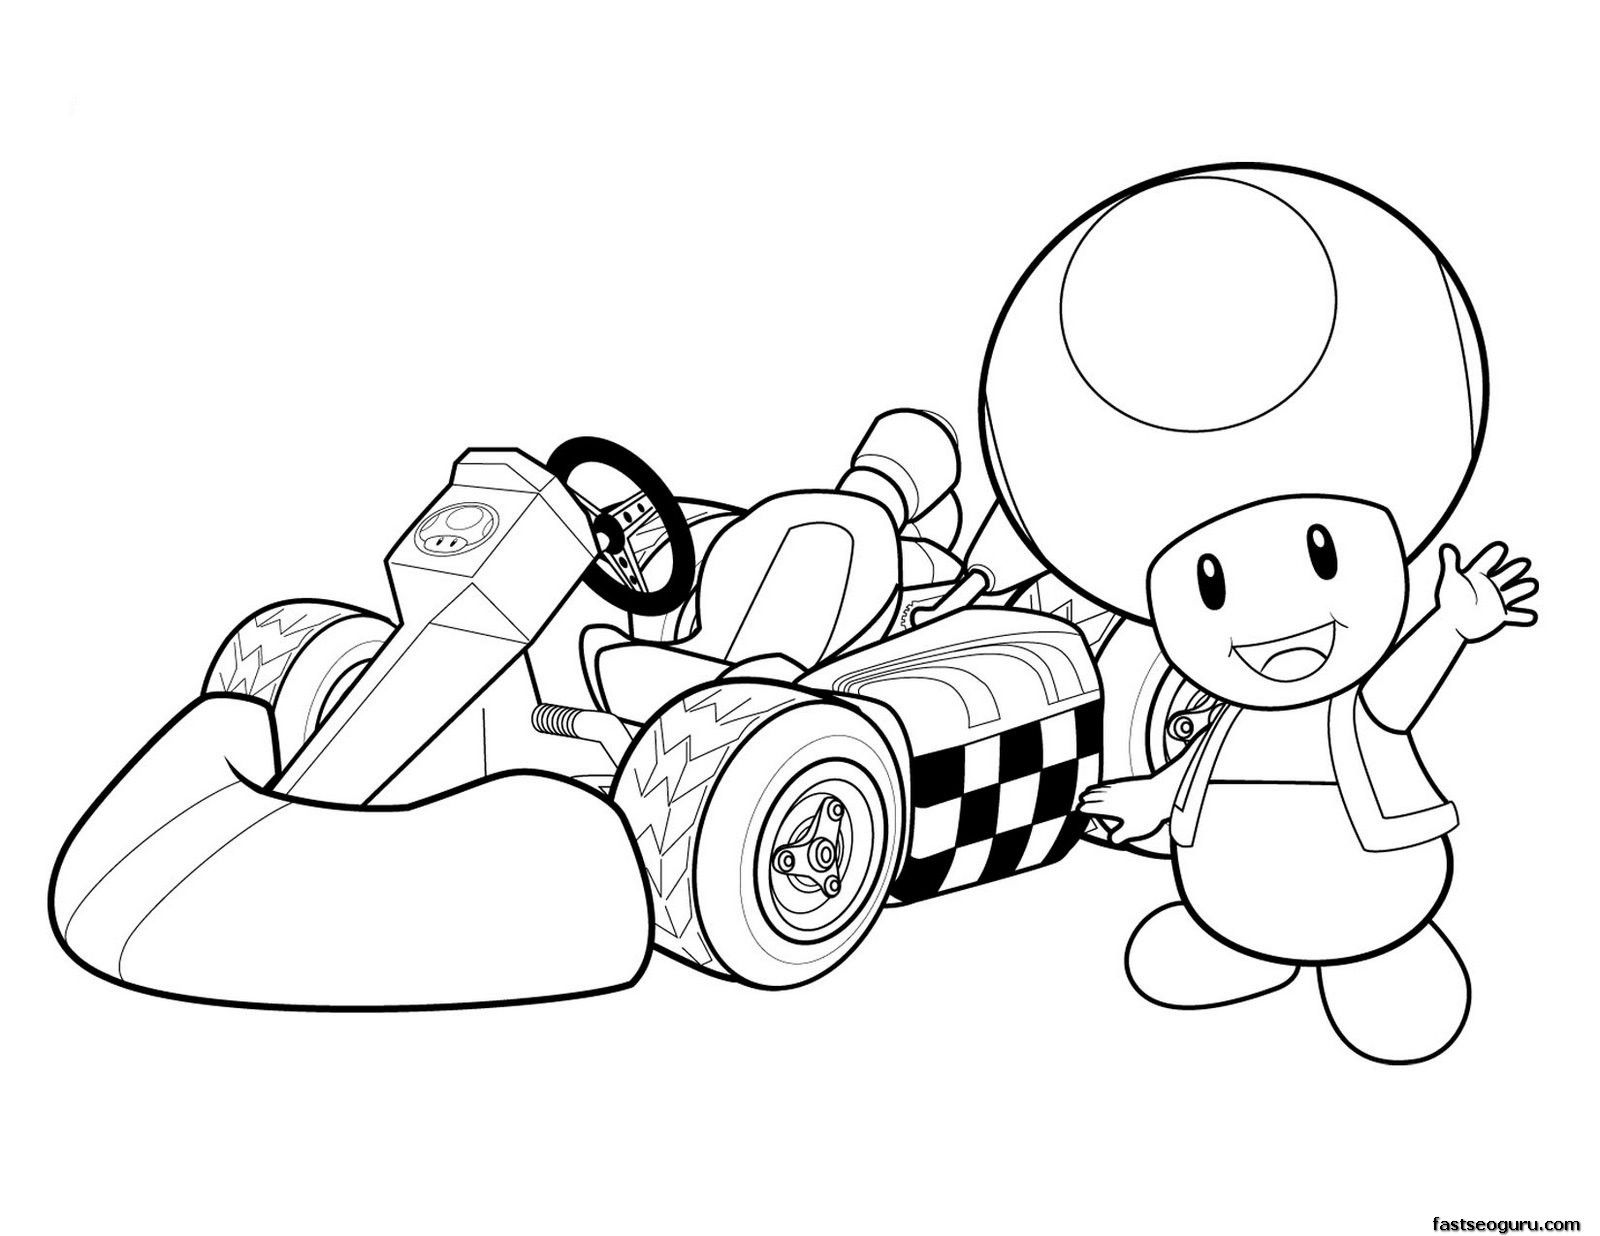 Print Out Super Mario And Toad Coloring Pages Mario Coloring Pages Super Mario Coloring Pages Coloring Pages